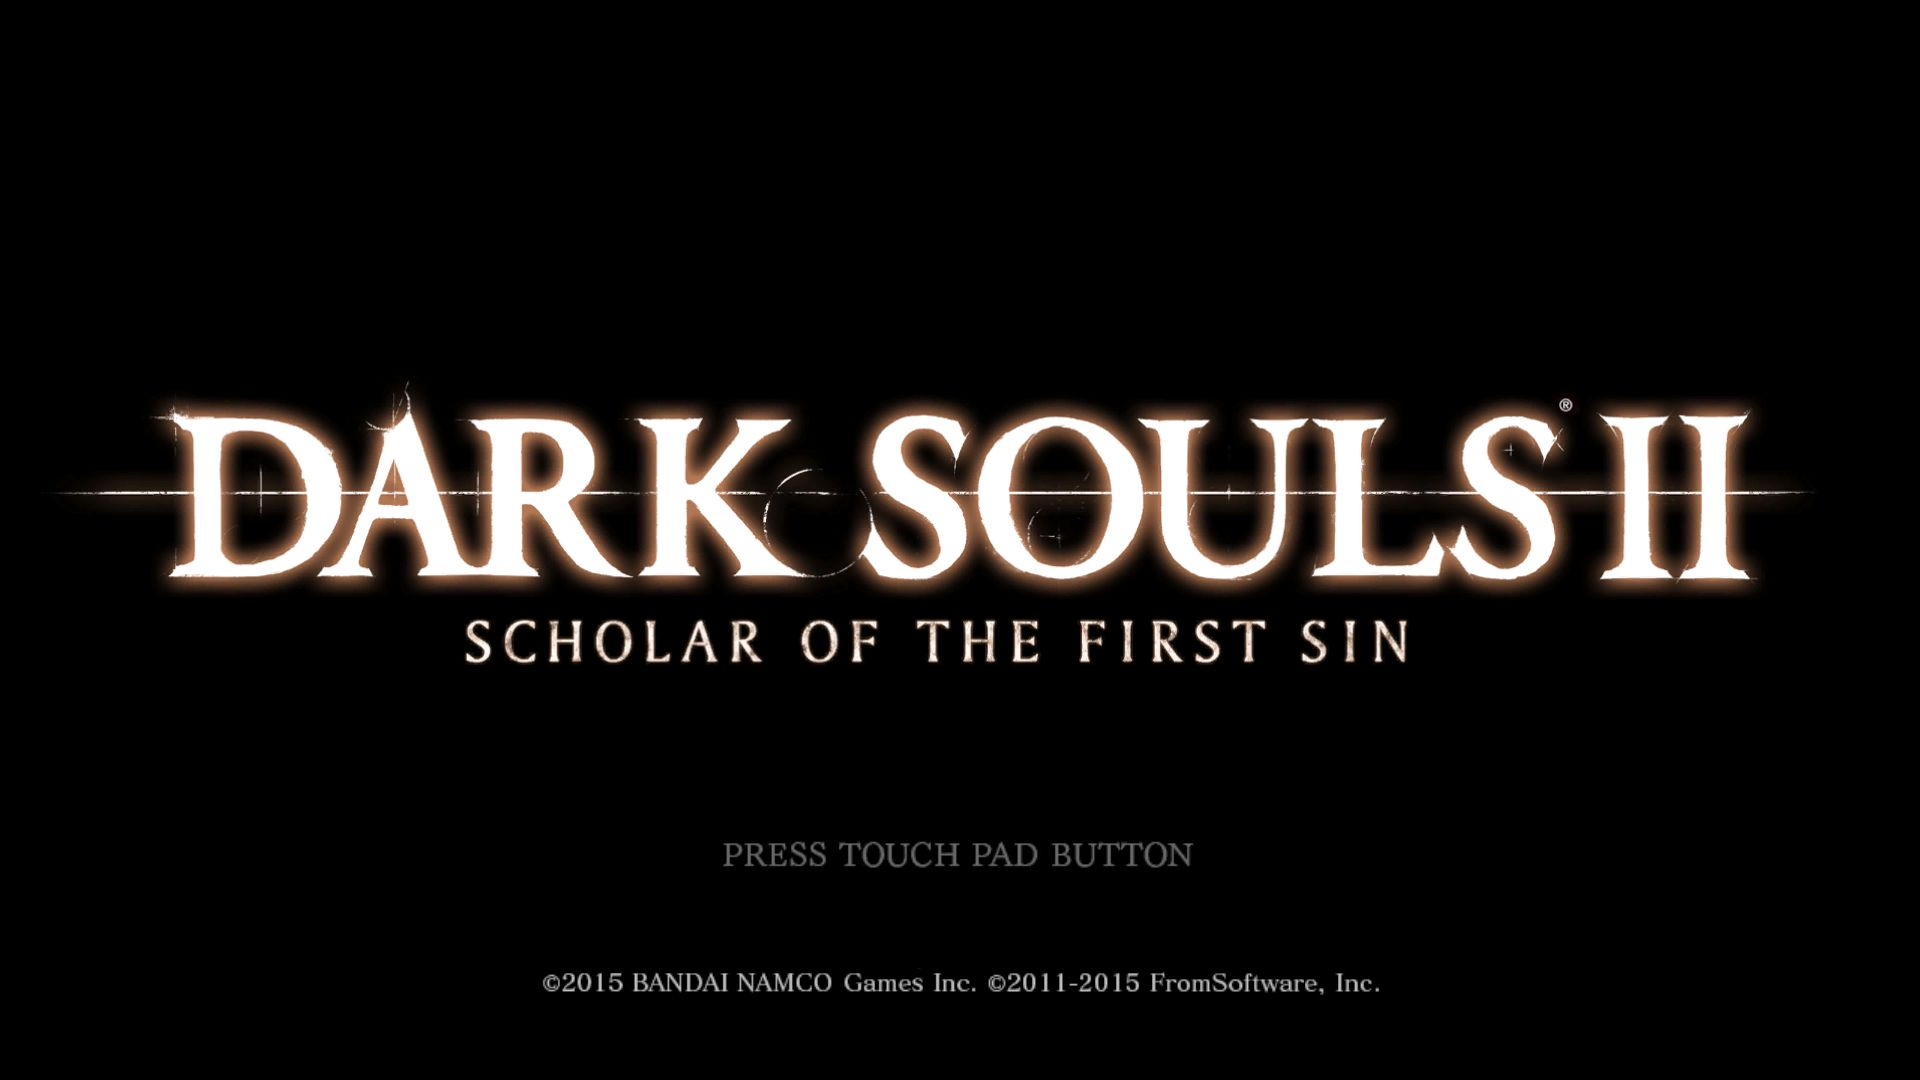 DARK SOULS Ⅱ SCHOLAR OF THE FIRST SIN Vol.1